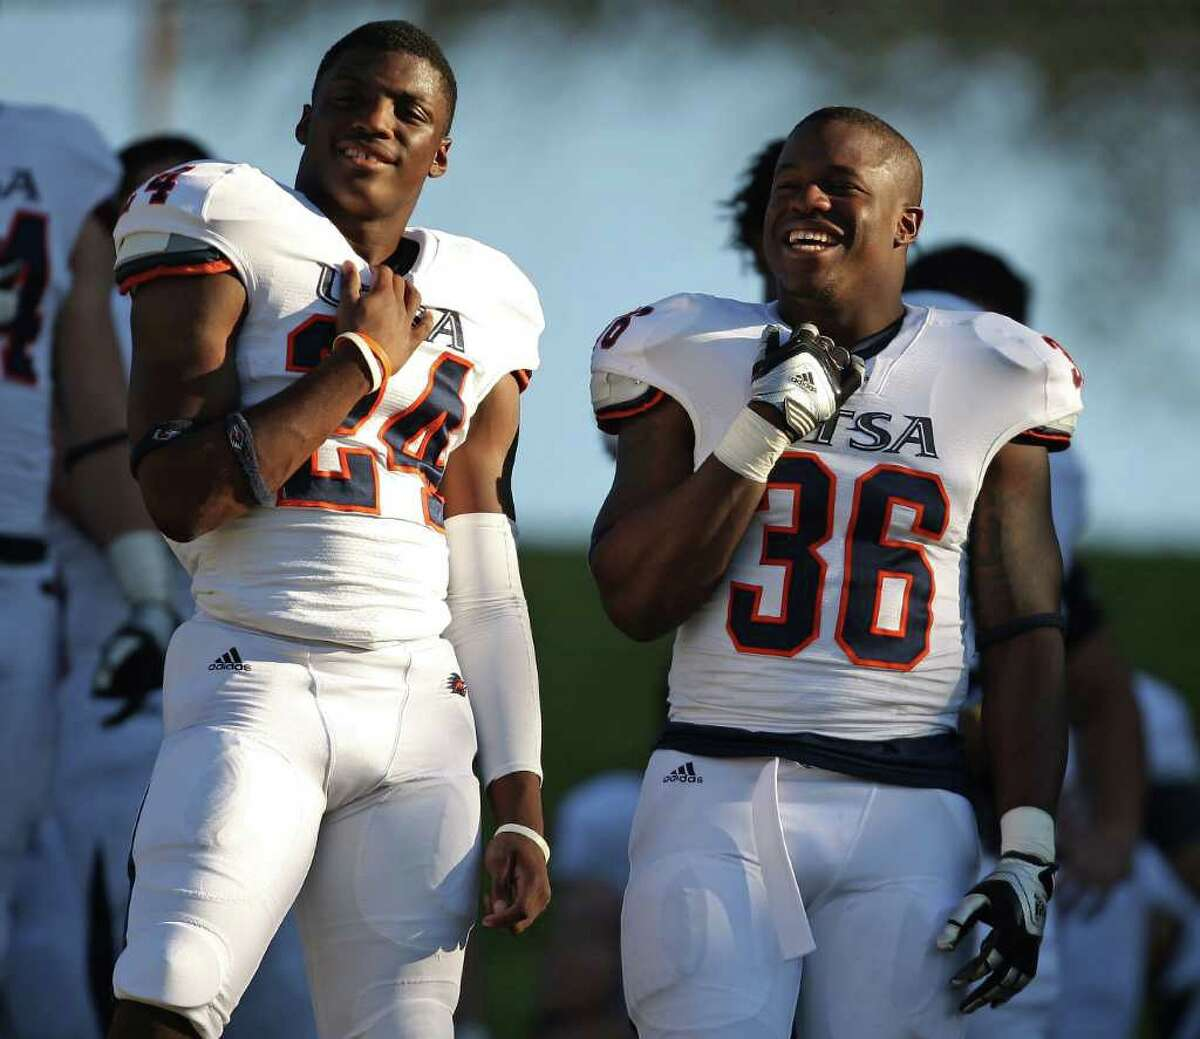 Roadrunners coaches know they have to get the multi-talented Evans Okotcha more touches at tailback in 2012.